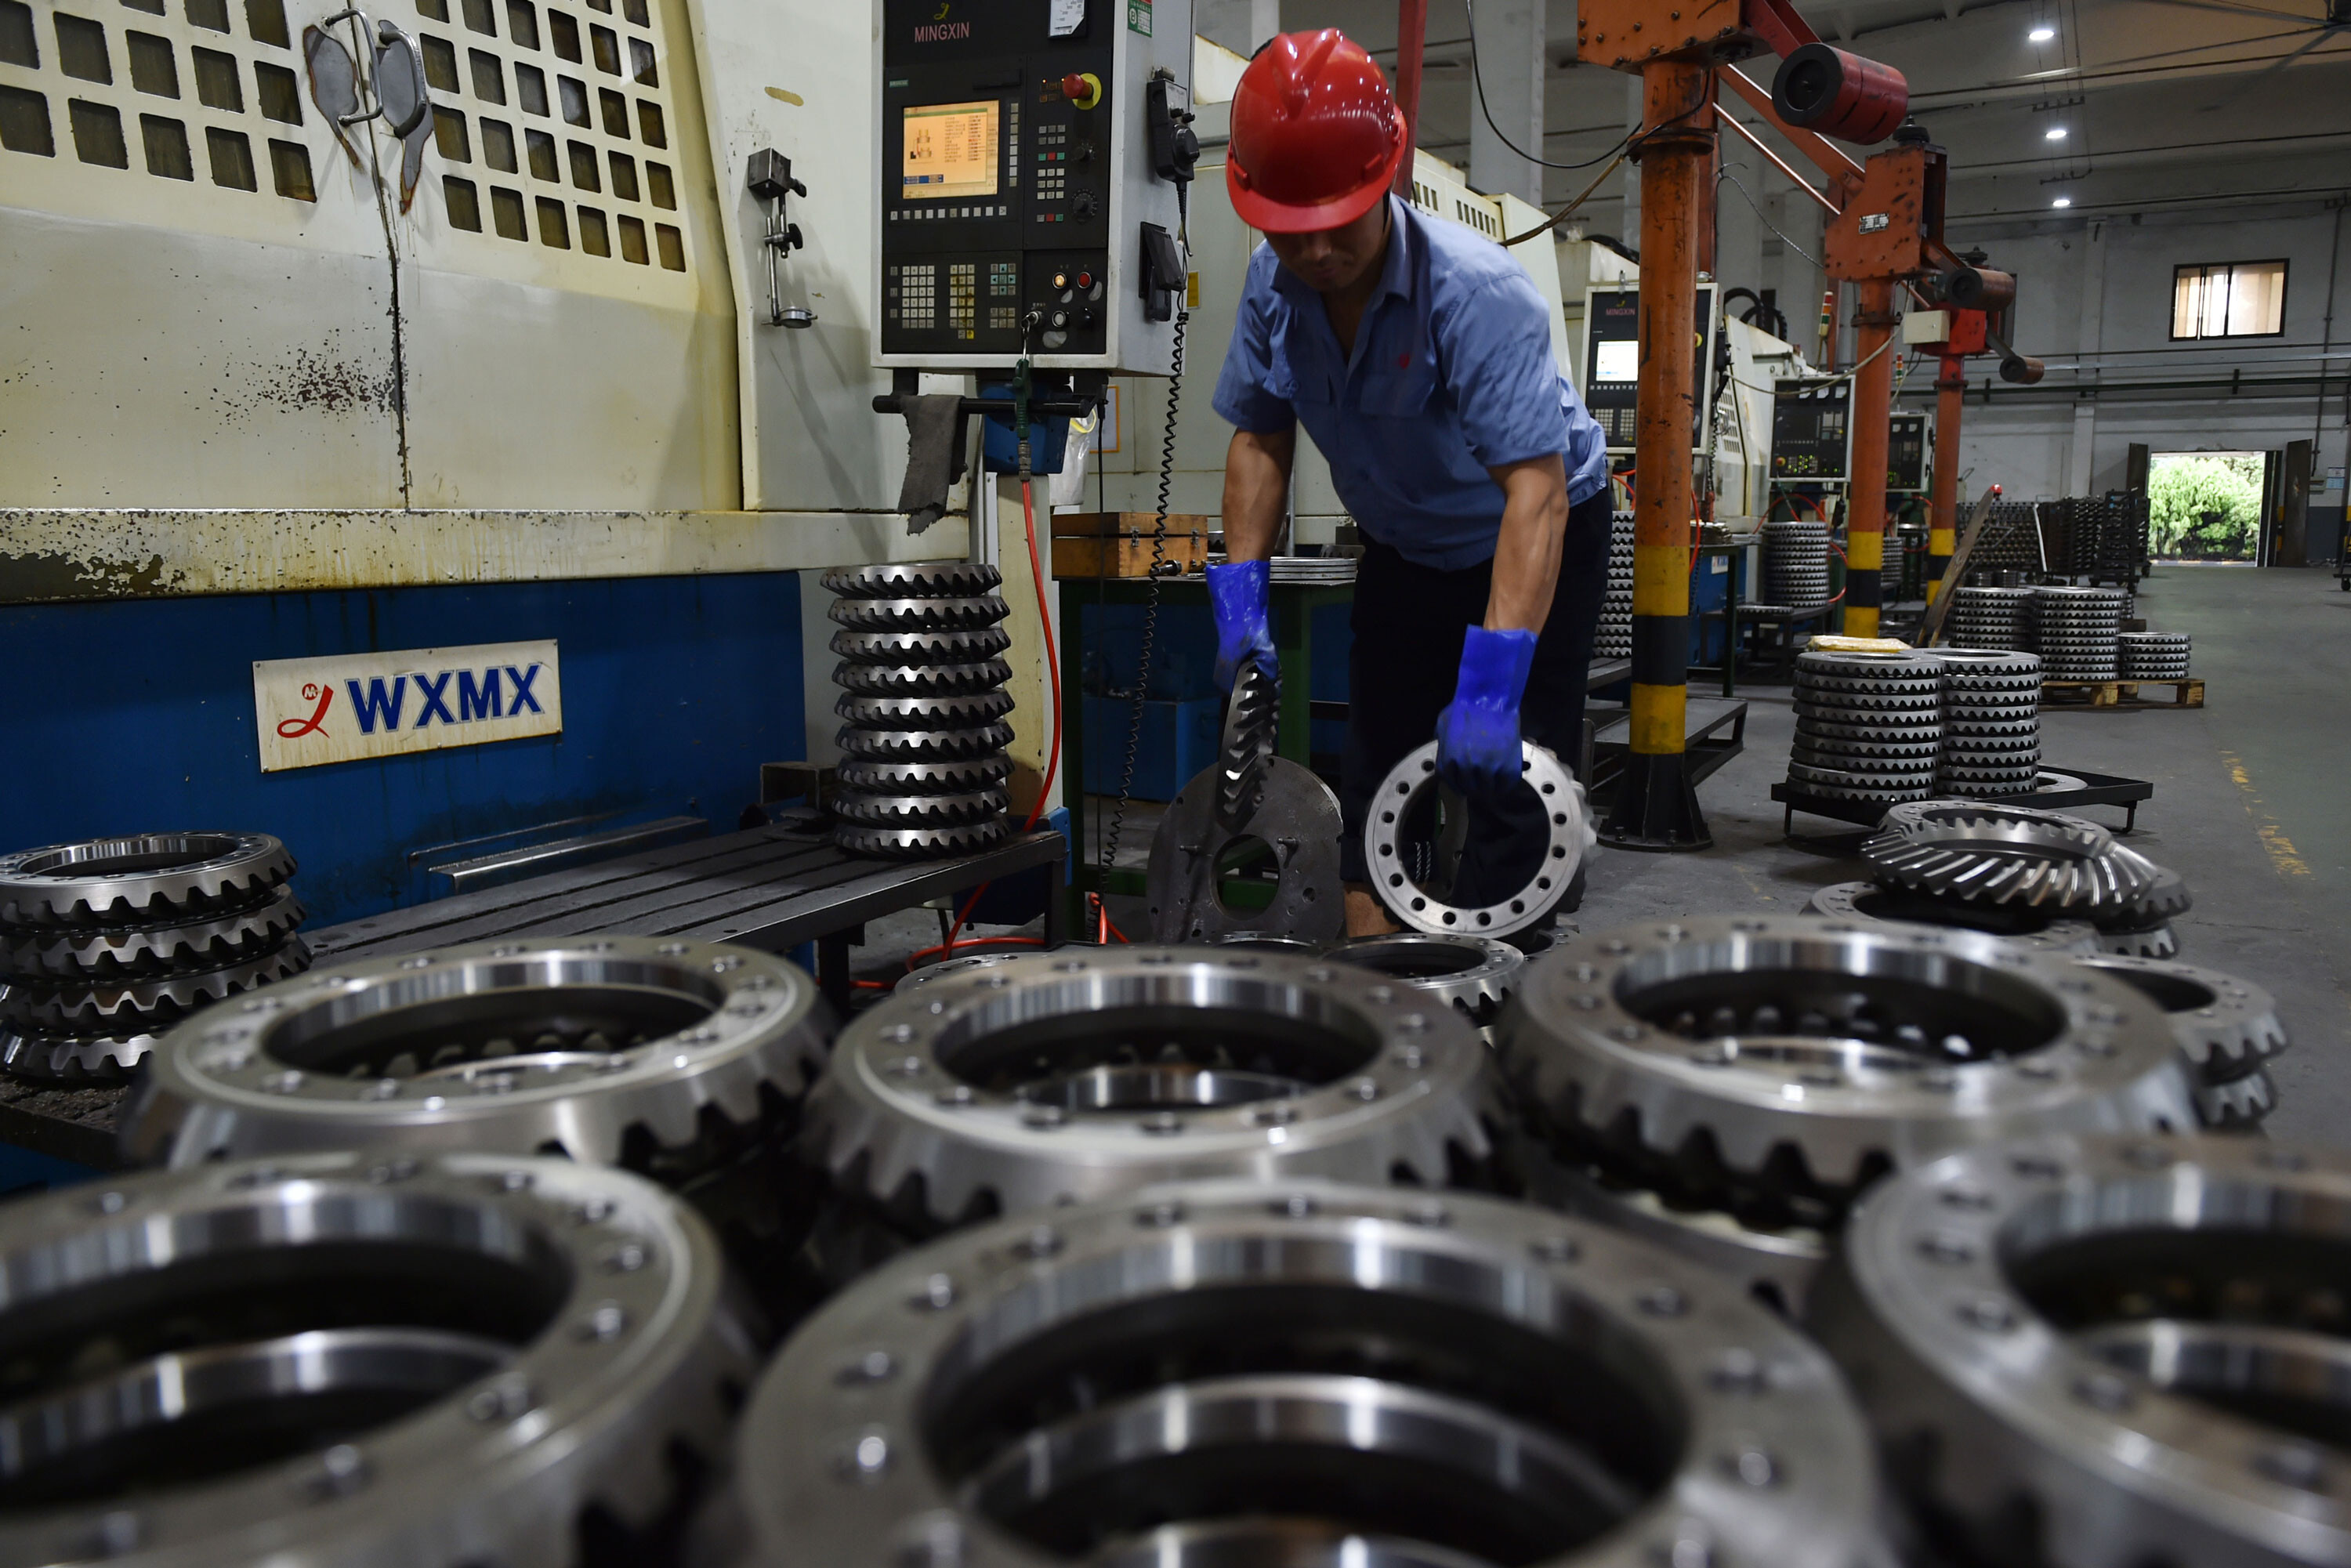 China's record factory inflation poses another threat to supply chains